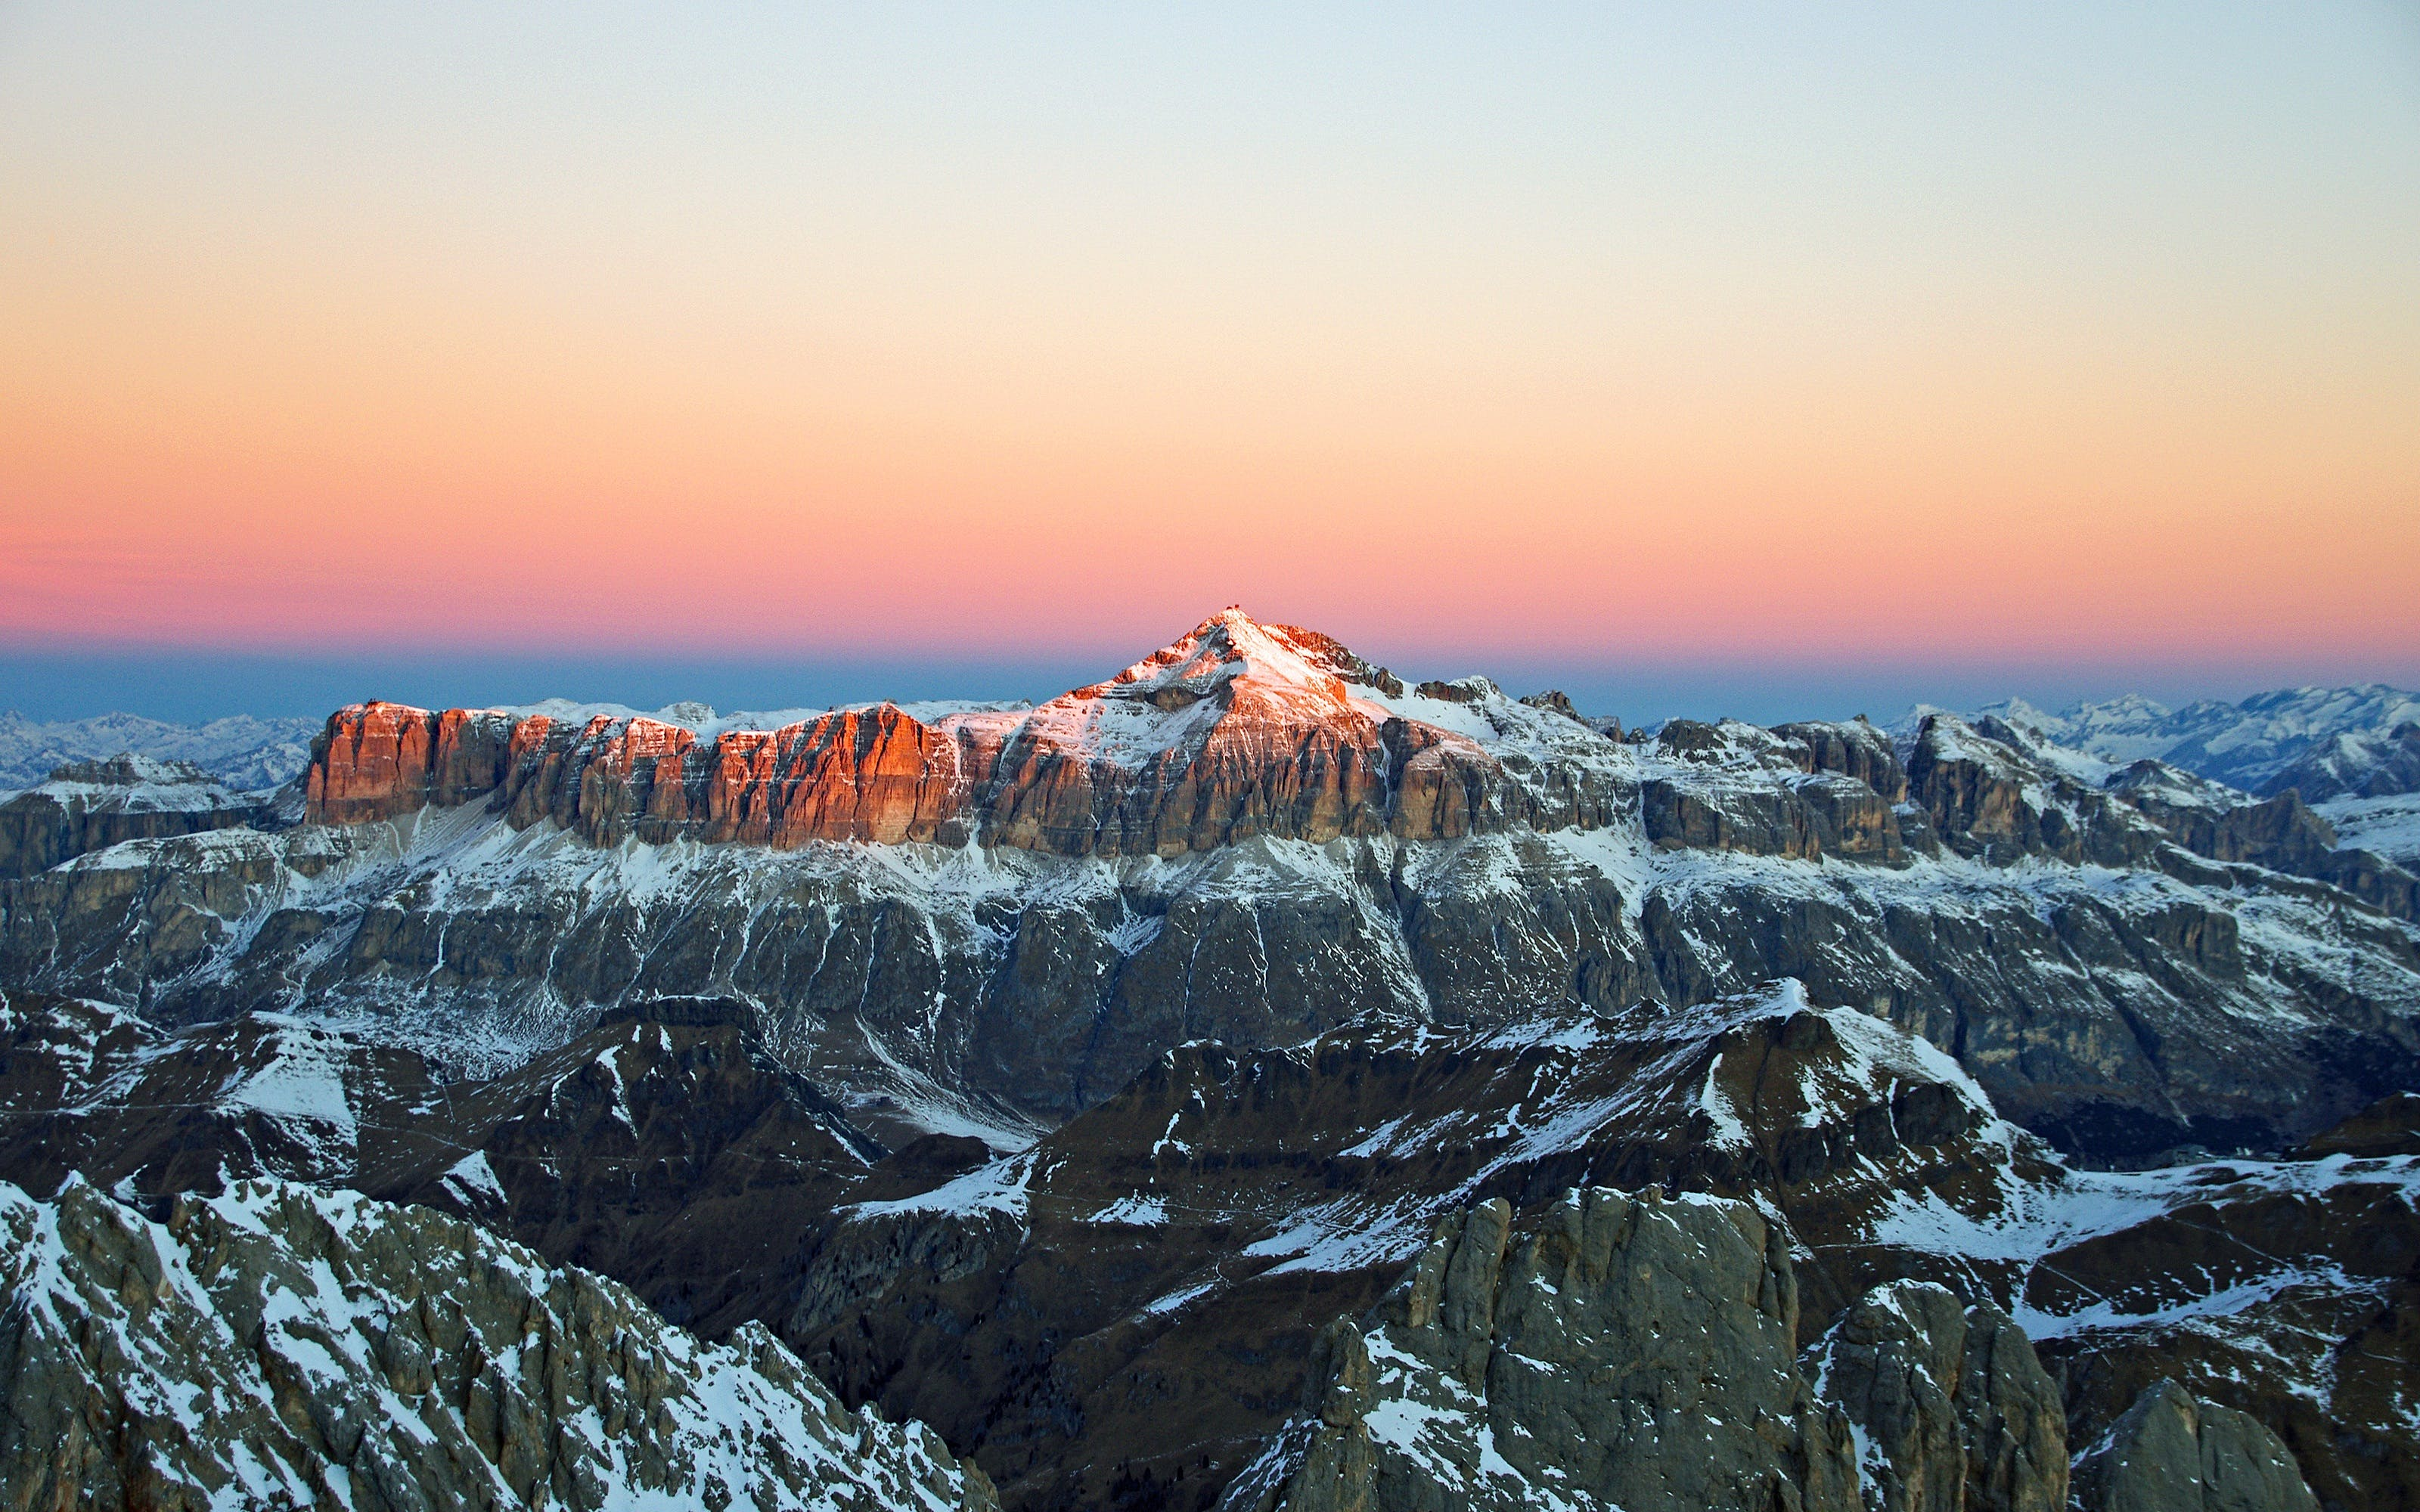 View of Snow Covered Mountain during Sunset